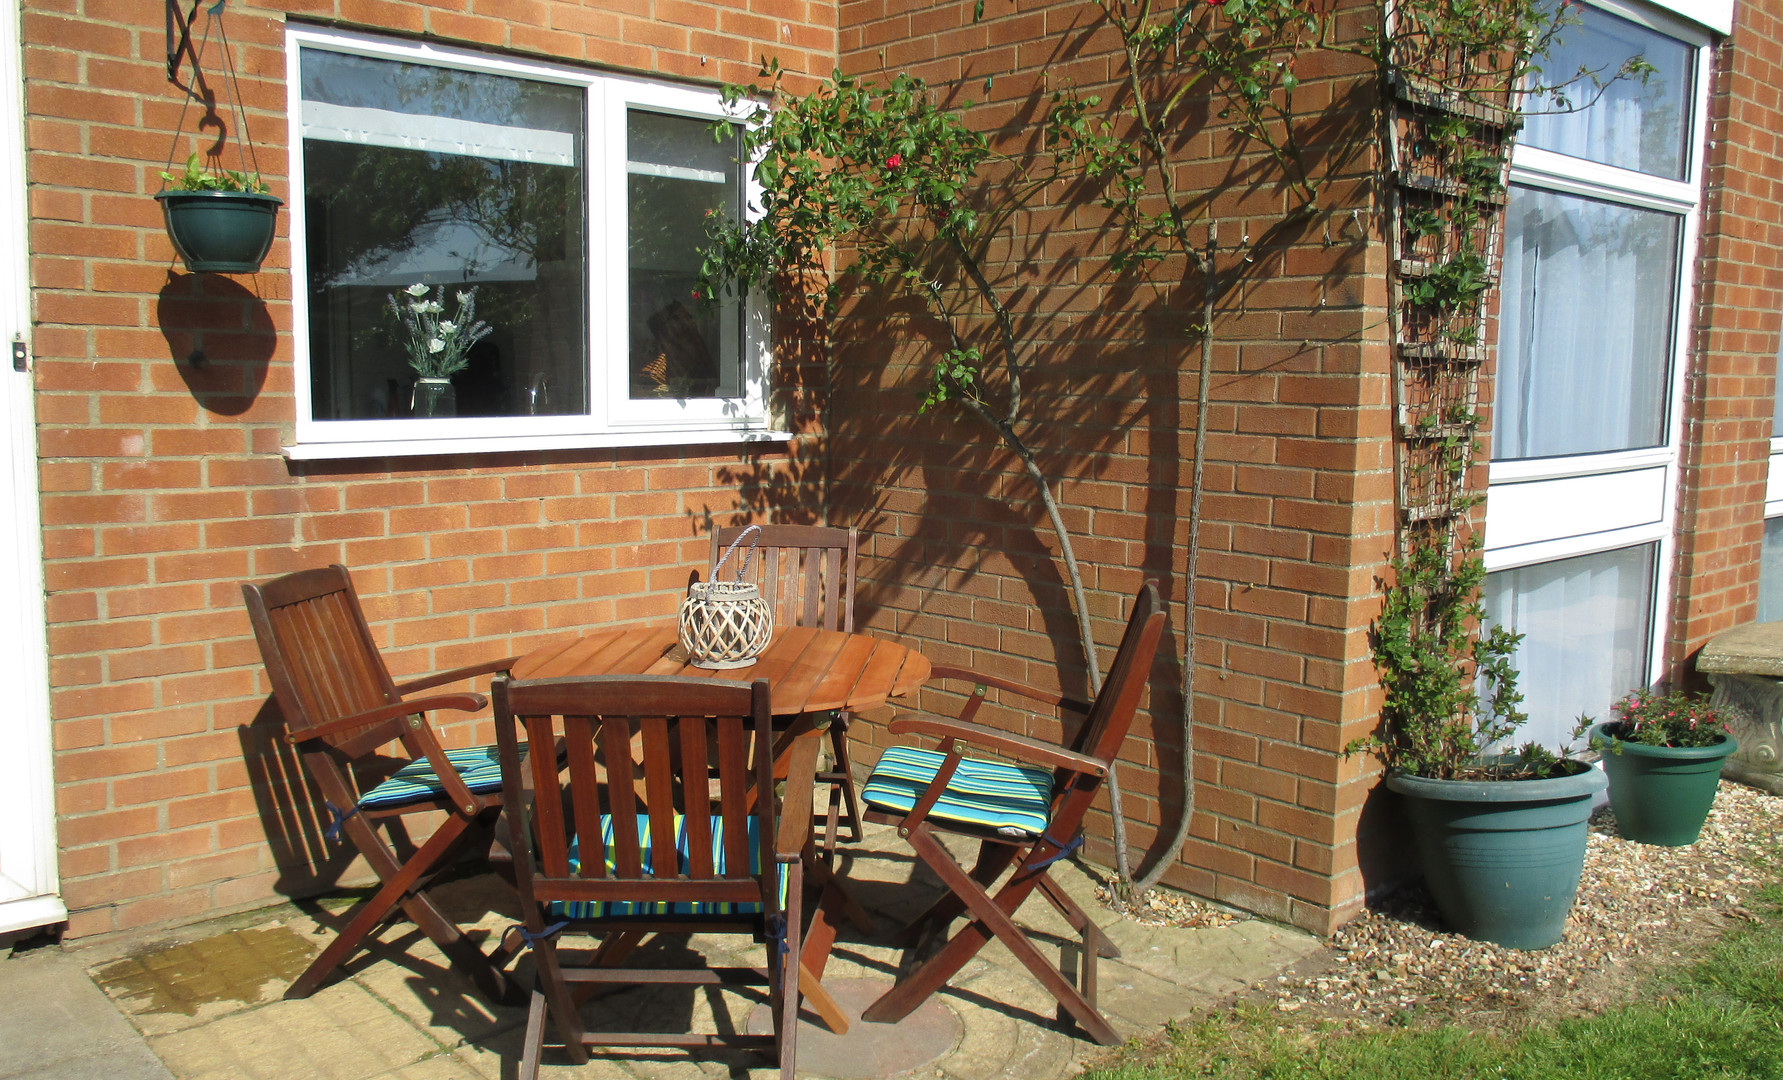 Patio area with table and chairs